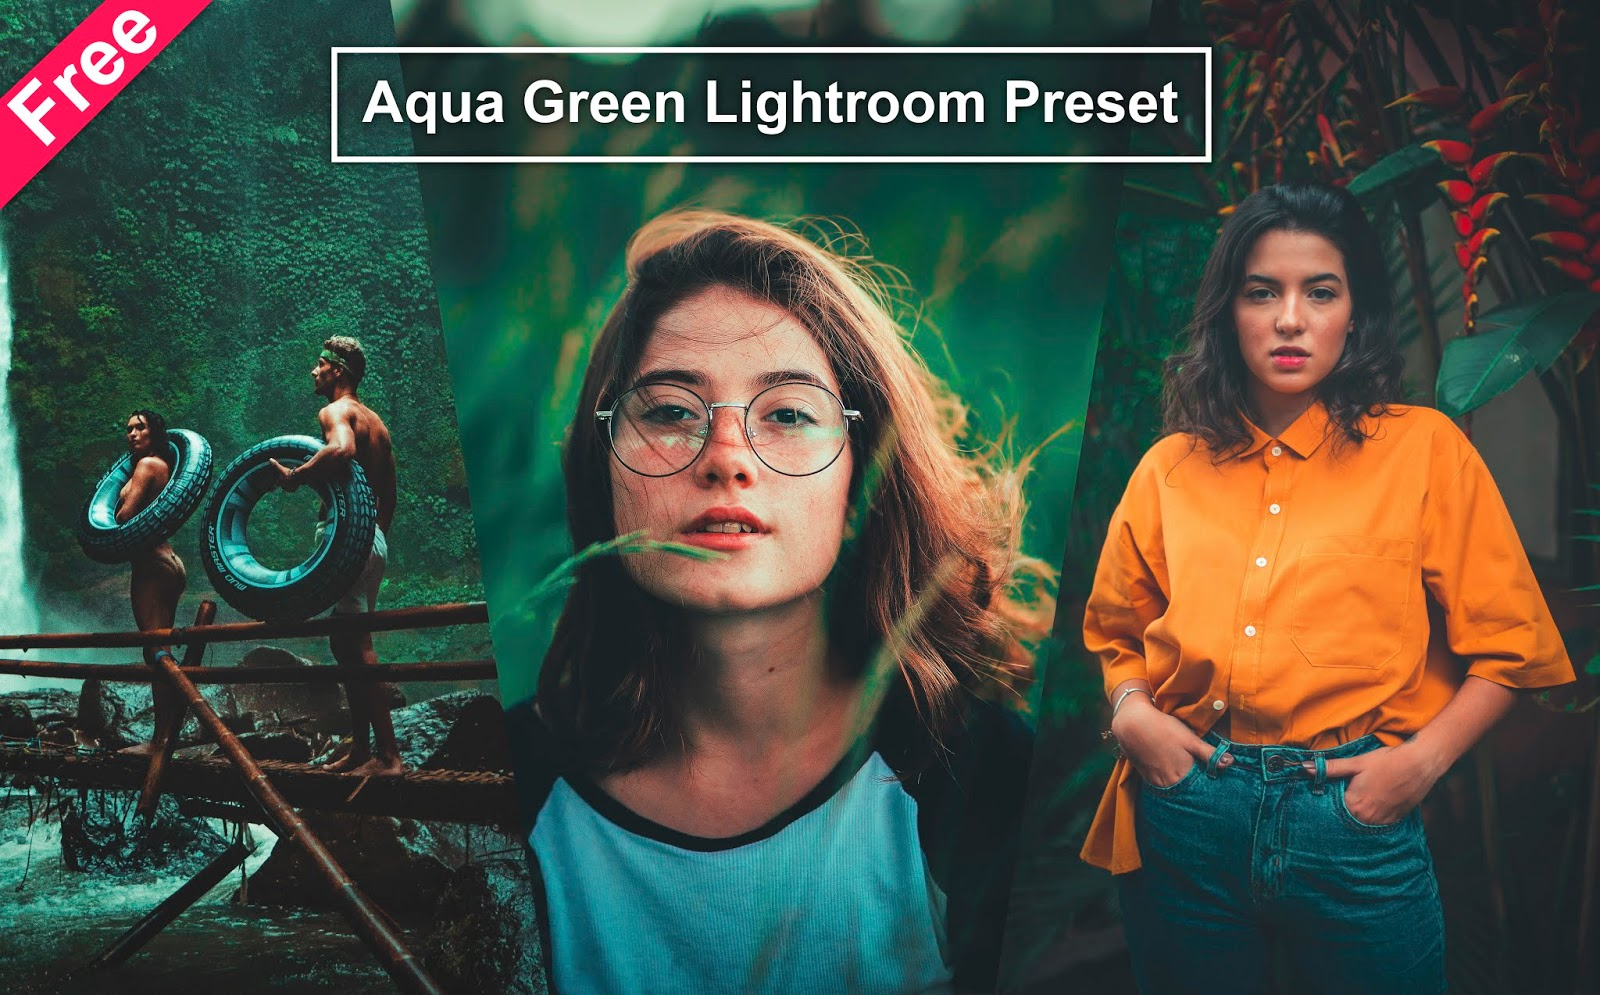 Download Aqua Green Lightroom Preset For Free | How to Make Aqua Green Effect to Photos in Lightroom